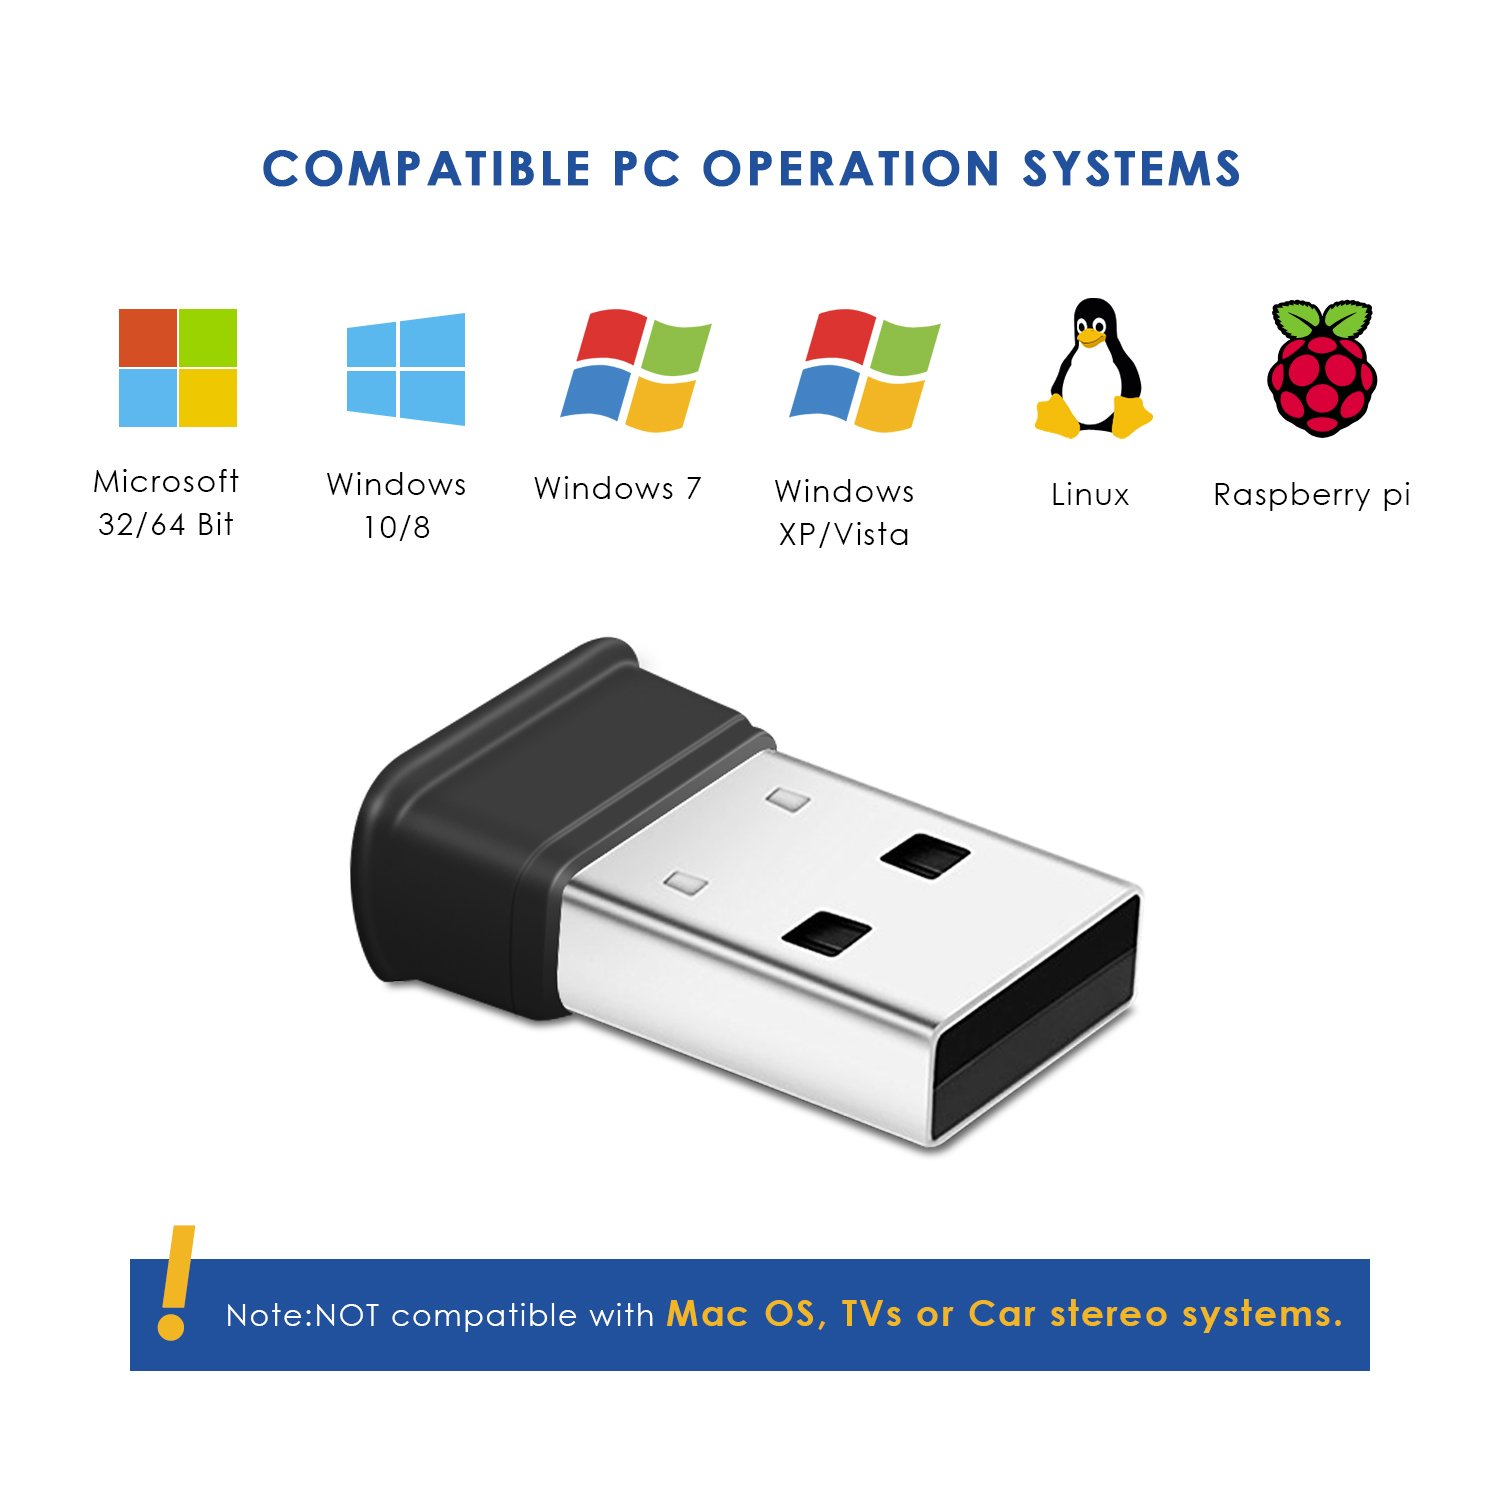 Bluetooth USB Adapter, Bluetooth 4.0 USB Dongle, Low Energy for PC, Wireless Bluetooth Dongle for PC Laptop Desktop Computer, Compatible with Windows 10, 8.1, 8, 7, Vista, XP, Linux and Raspberry PI by HIGHEVER